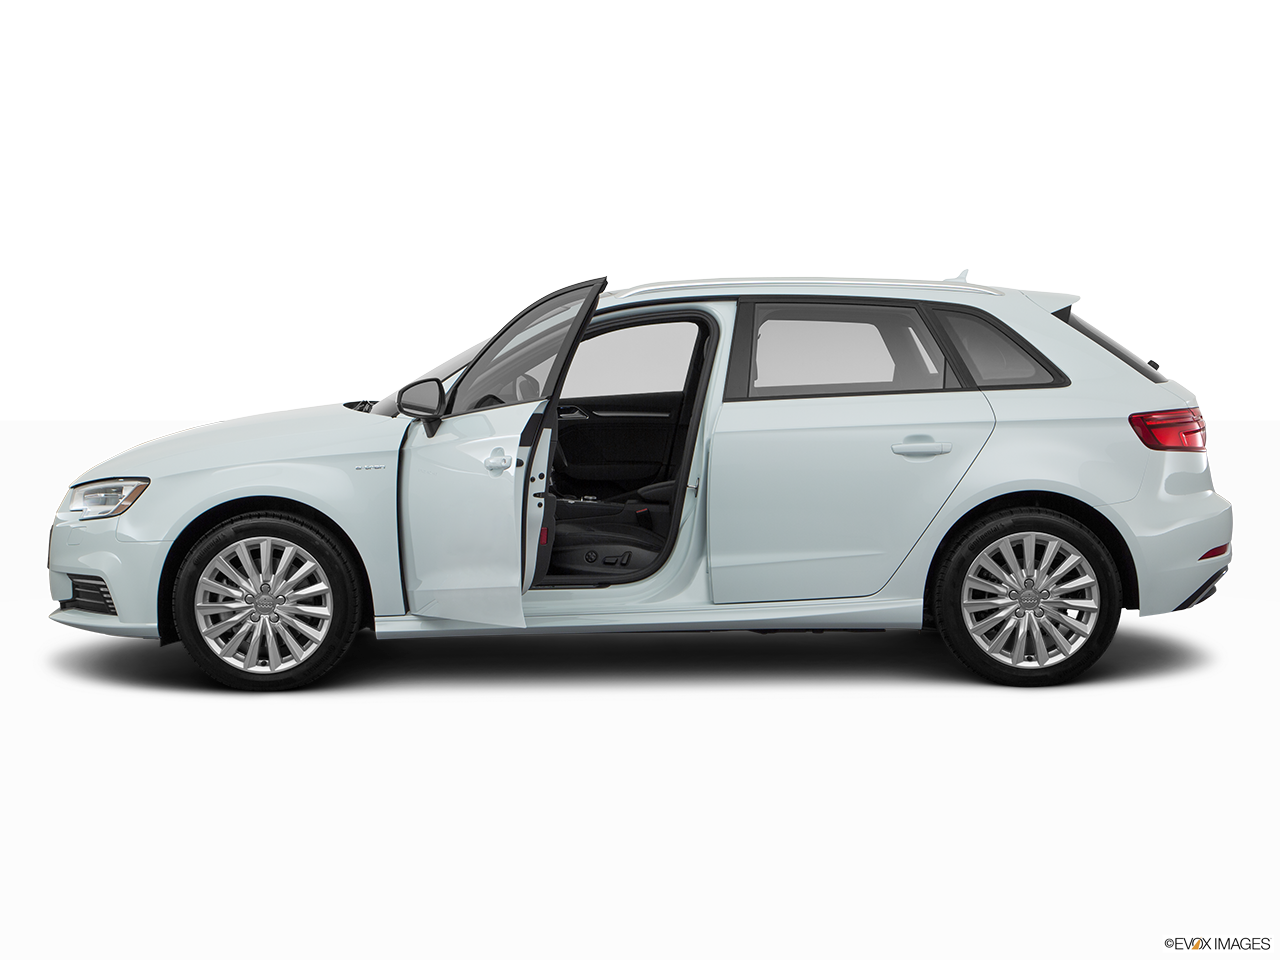 Side view of the Audi A3 e-tron